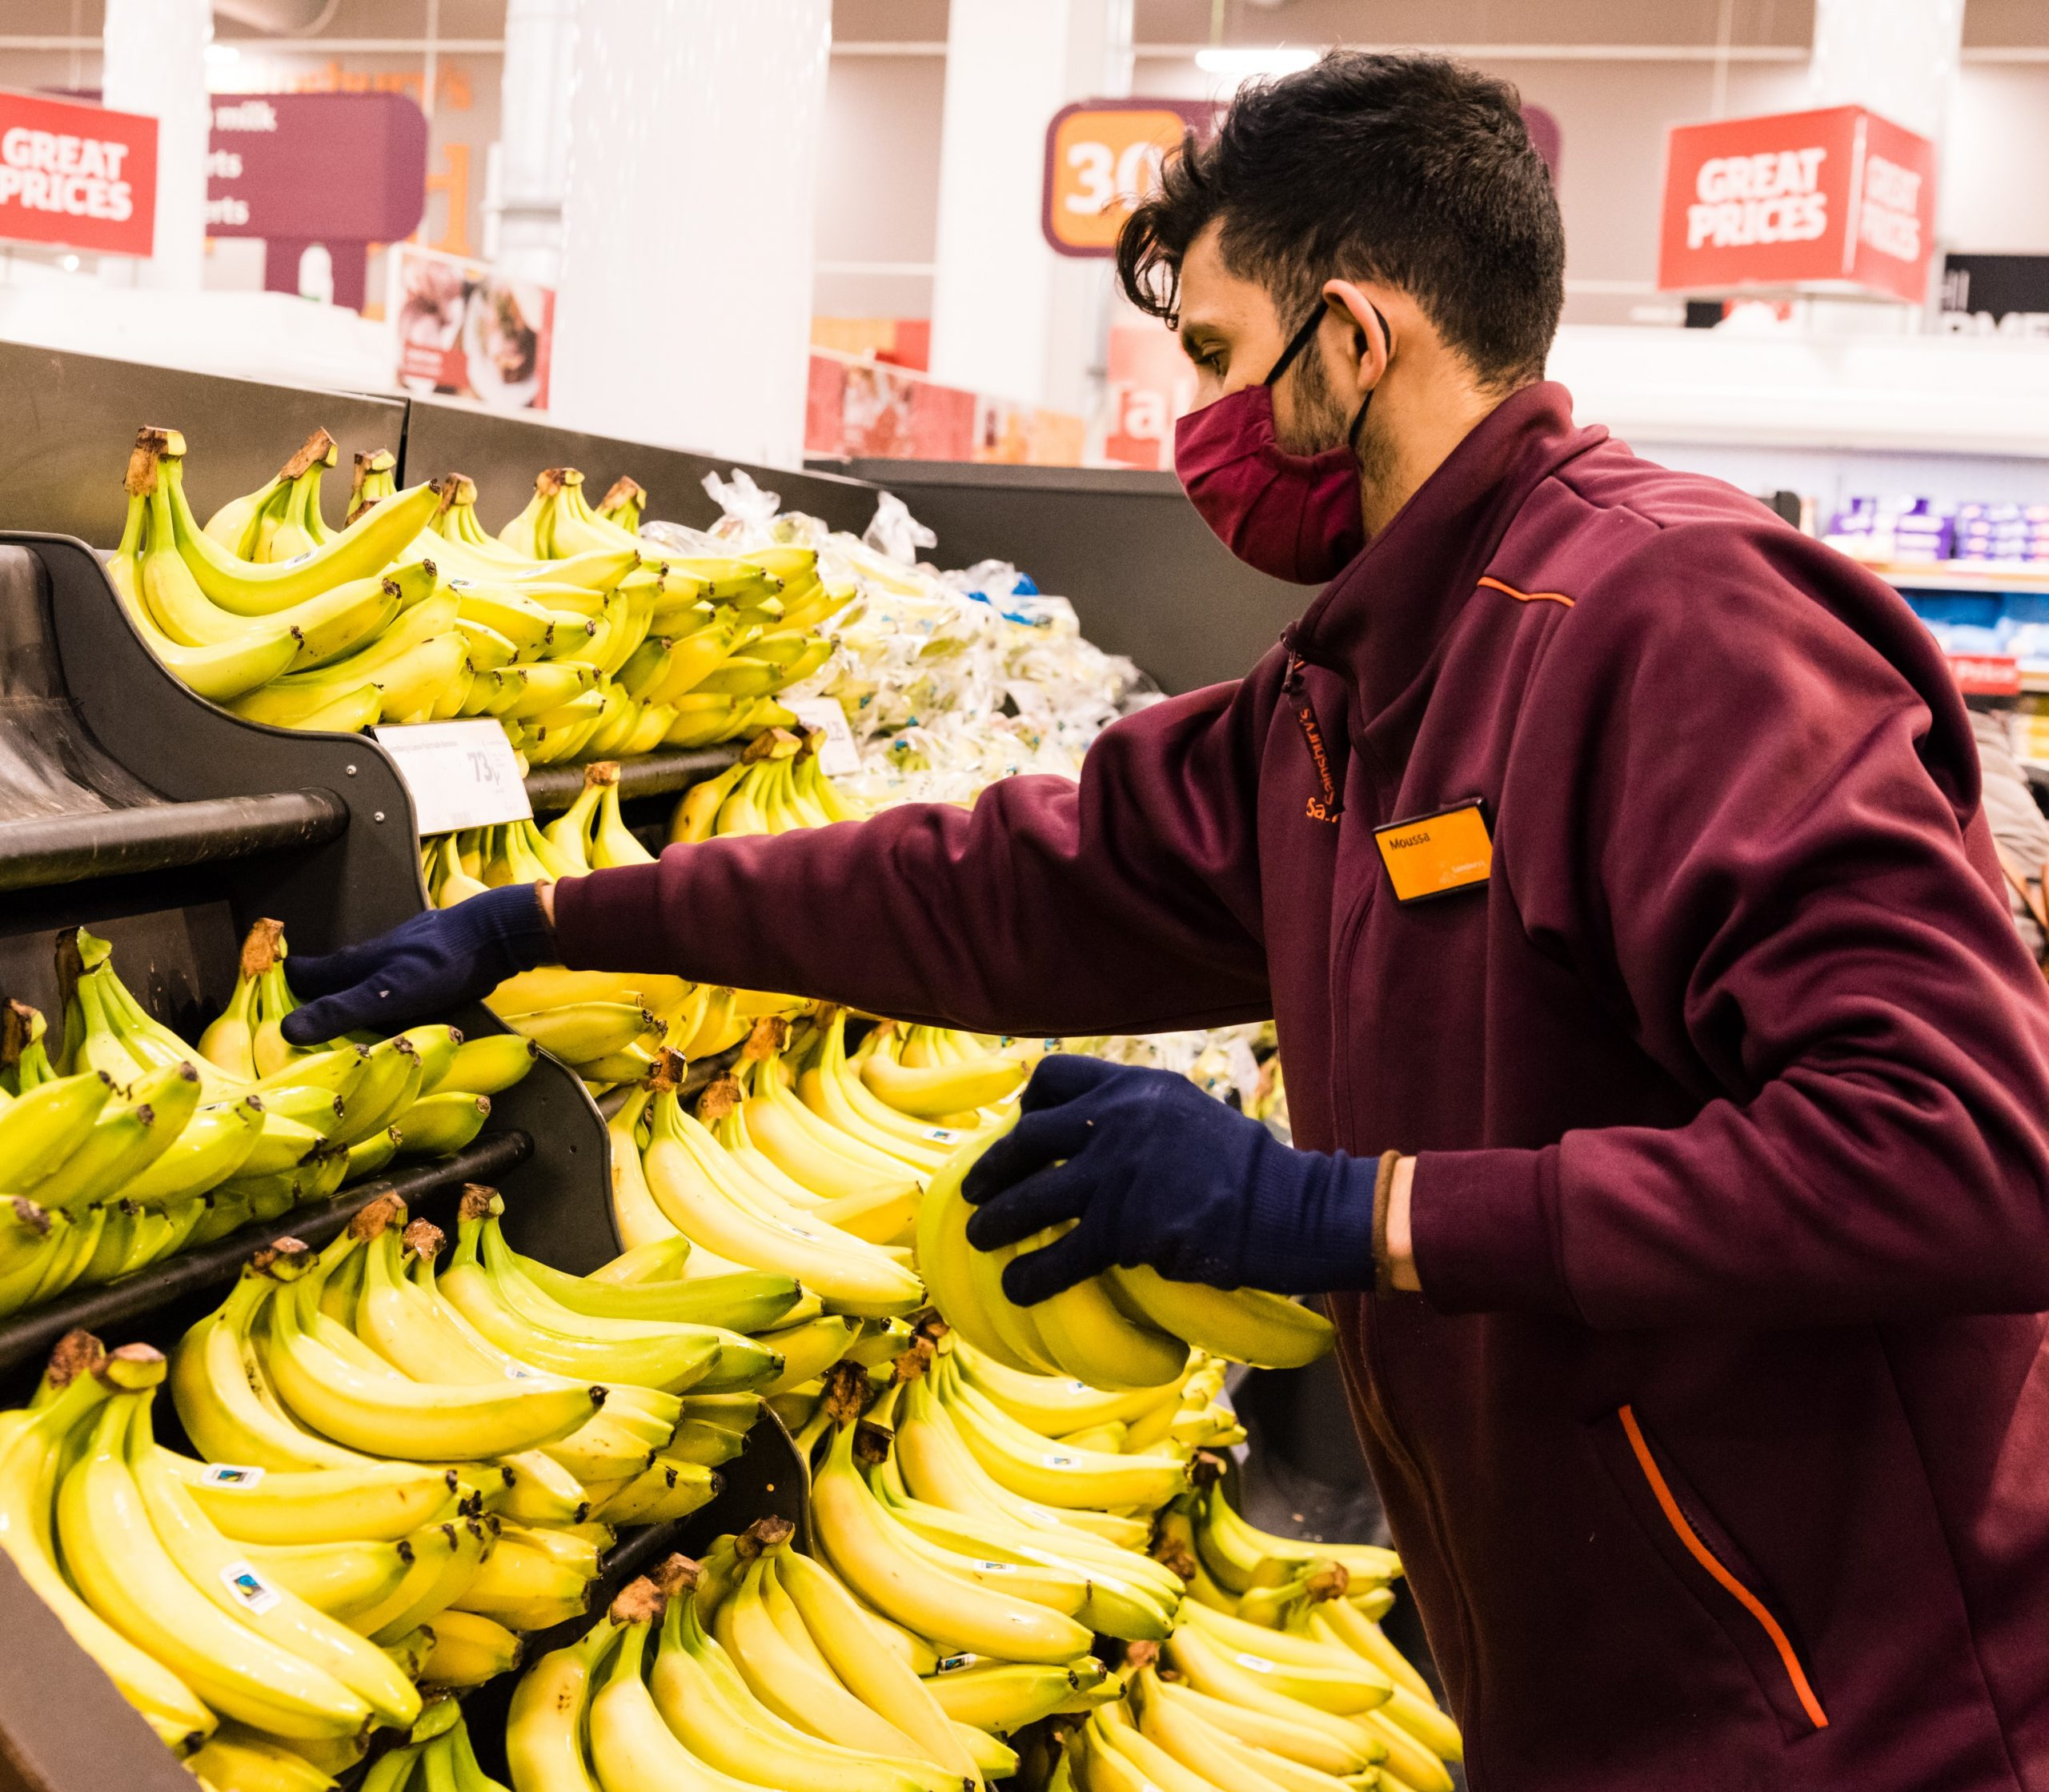 Sainsbury's was pleased with strong Christmas results and pledged to prioritise staff and customers safety